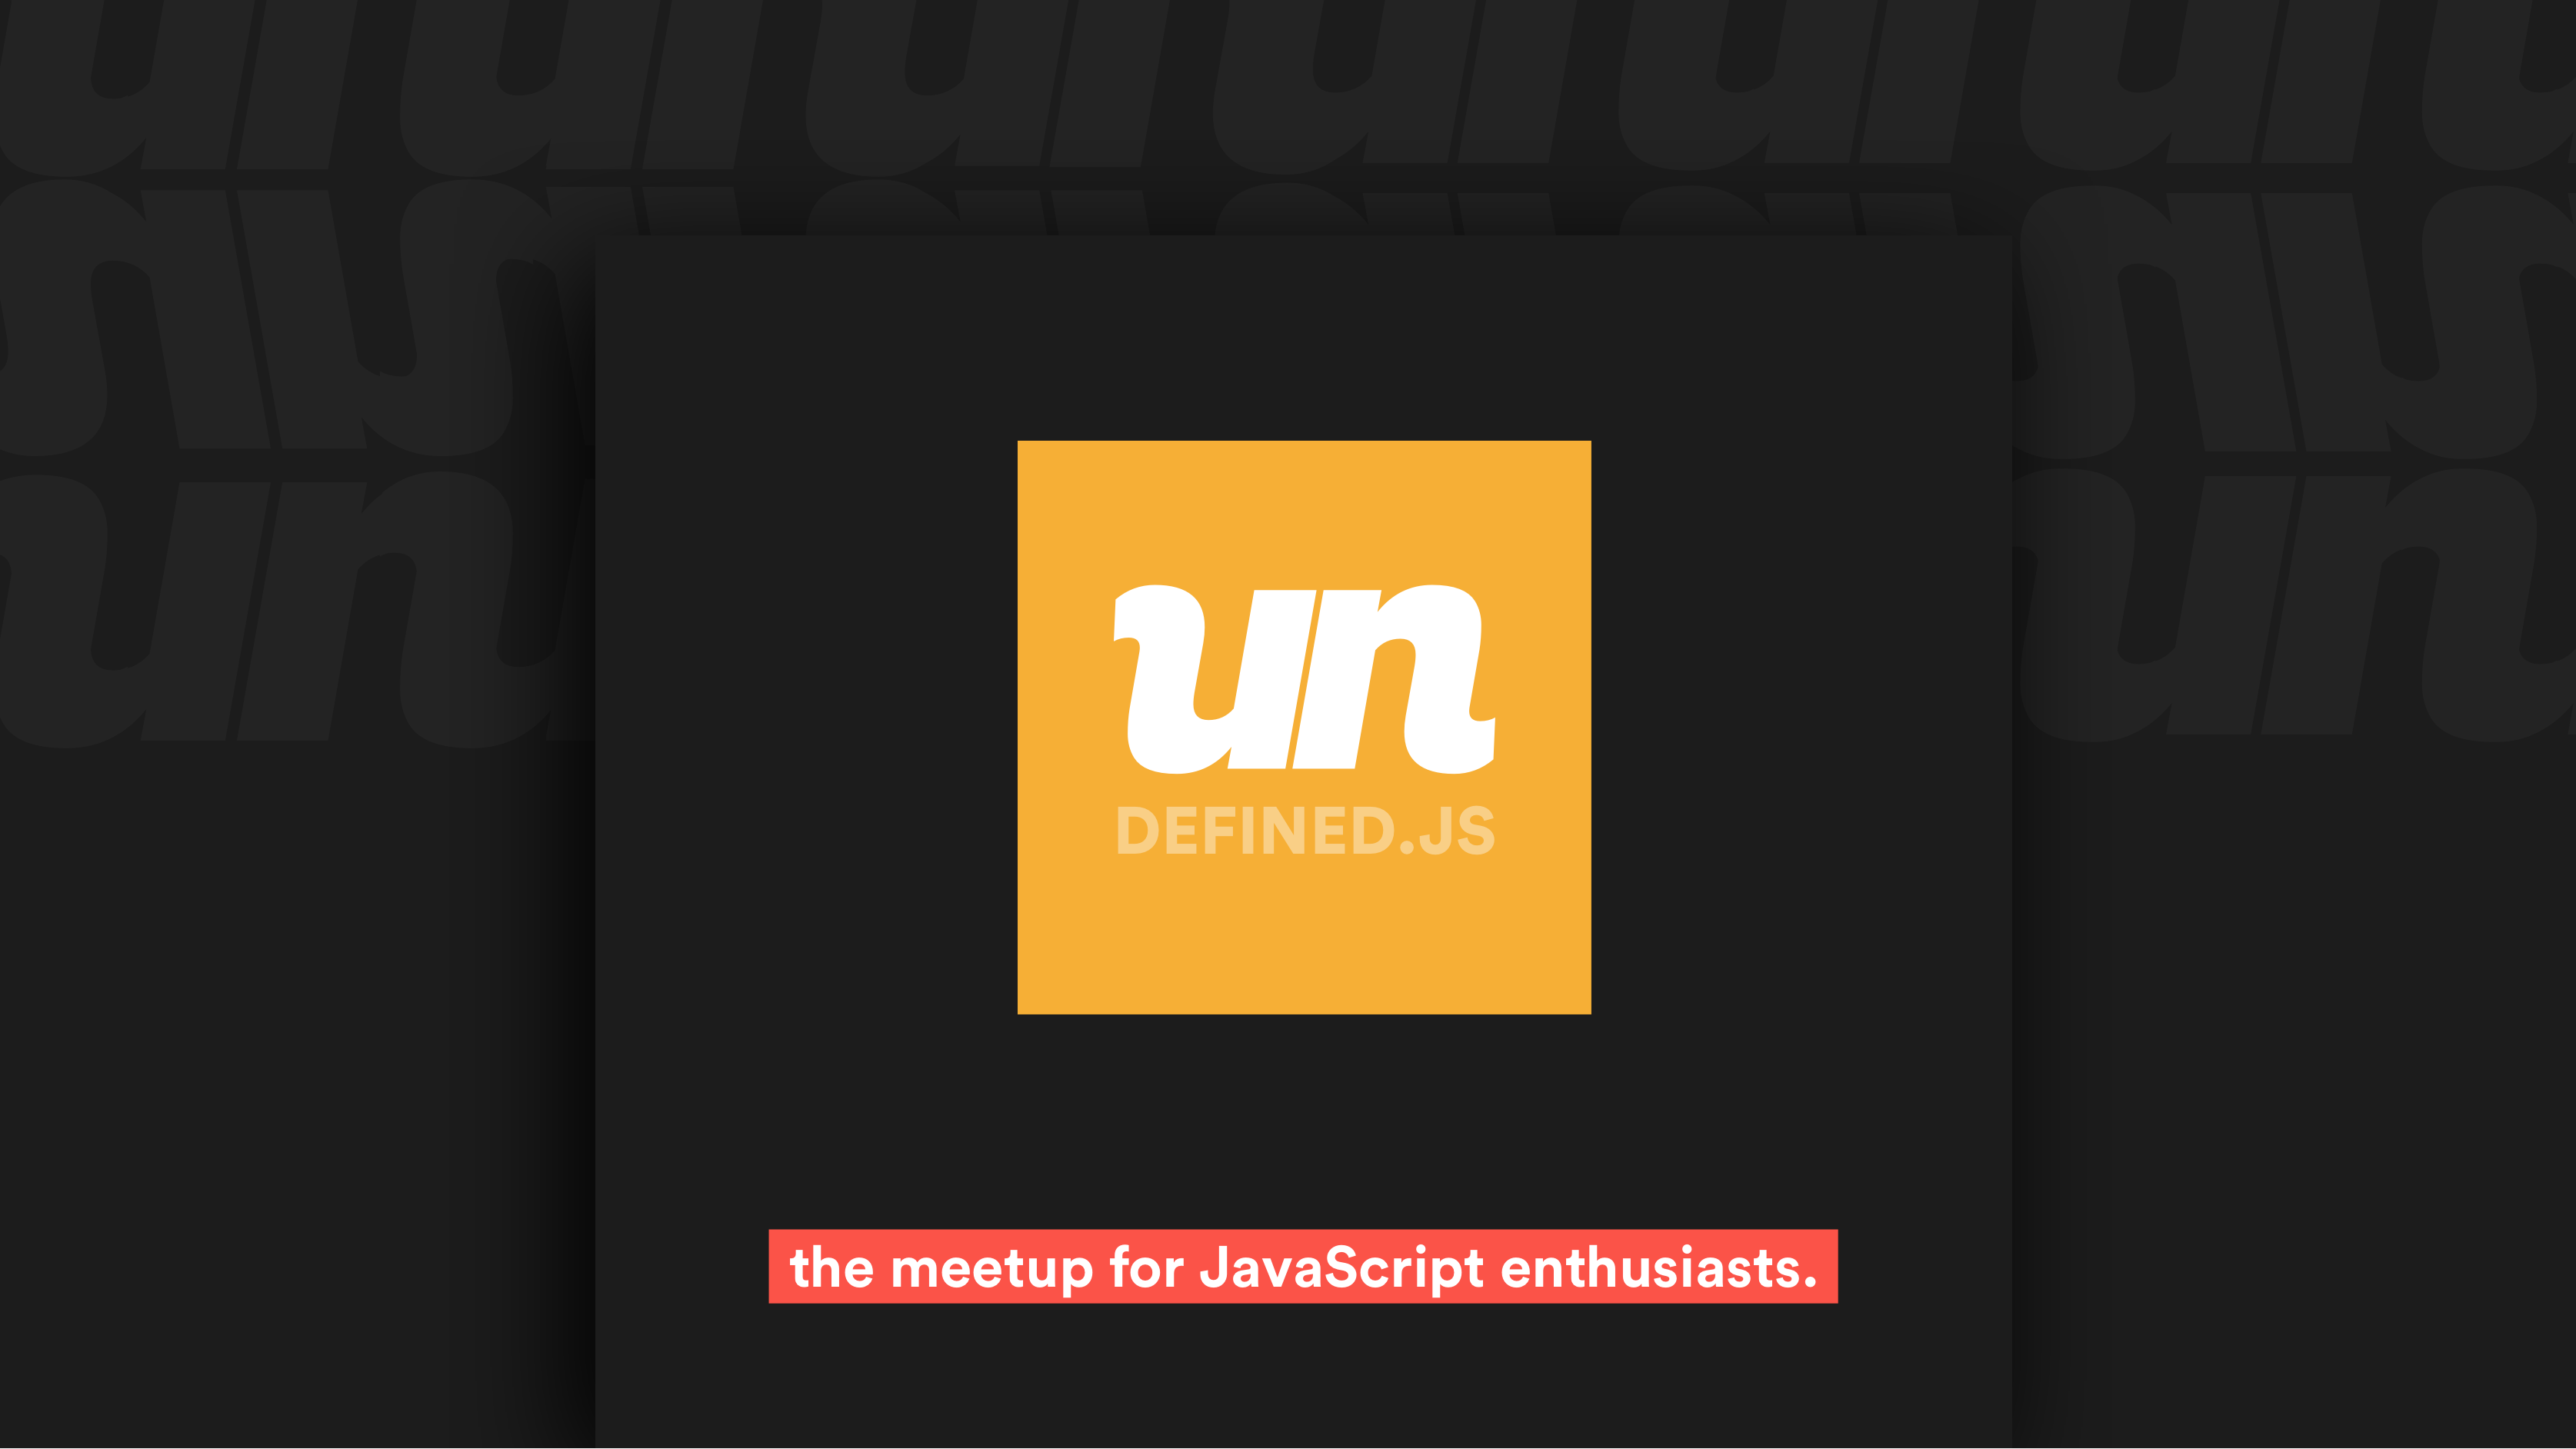 Undefined.js